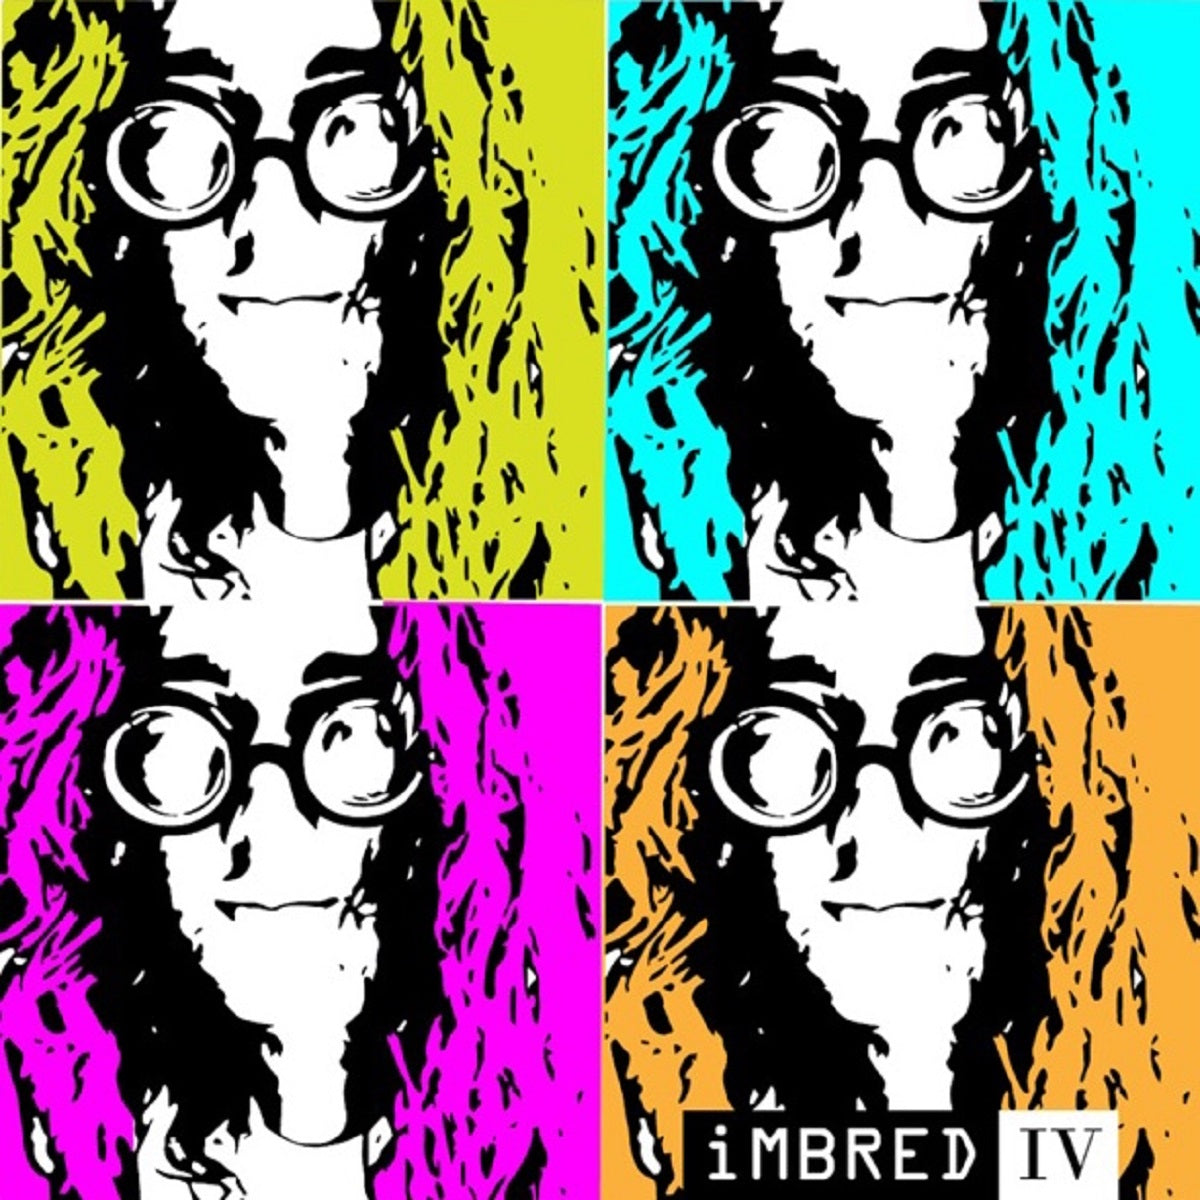 Imbred – IV (Remastered)